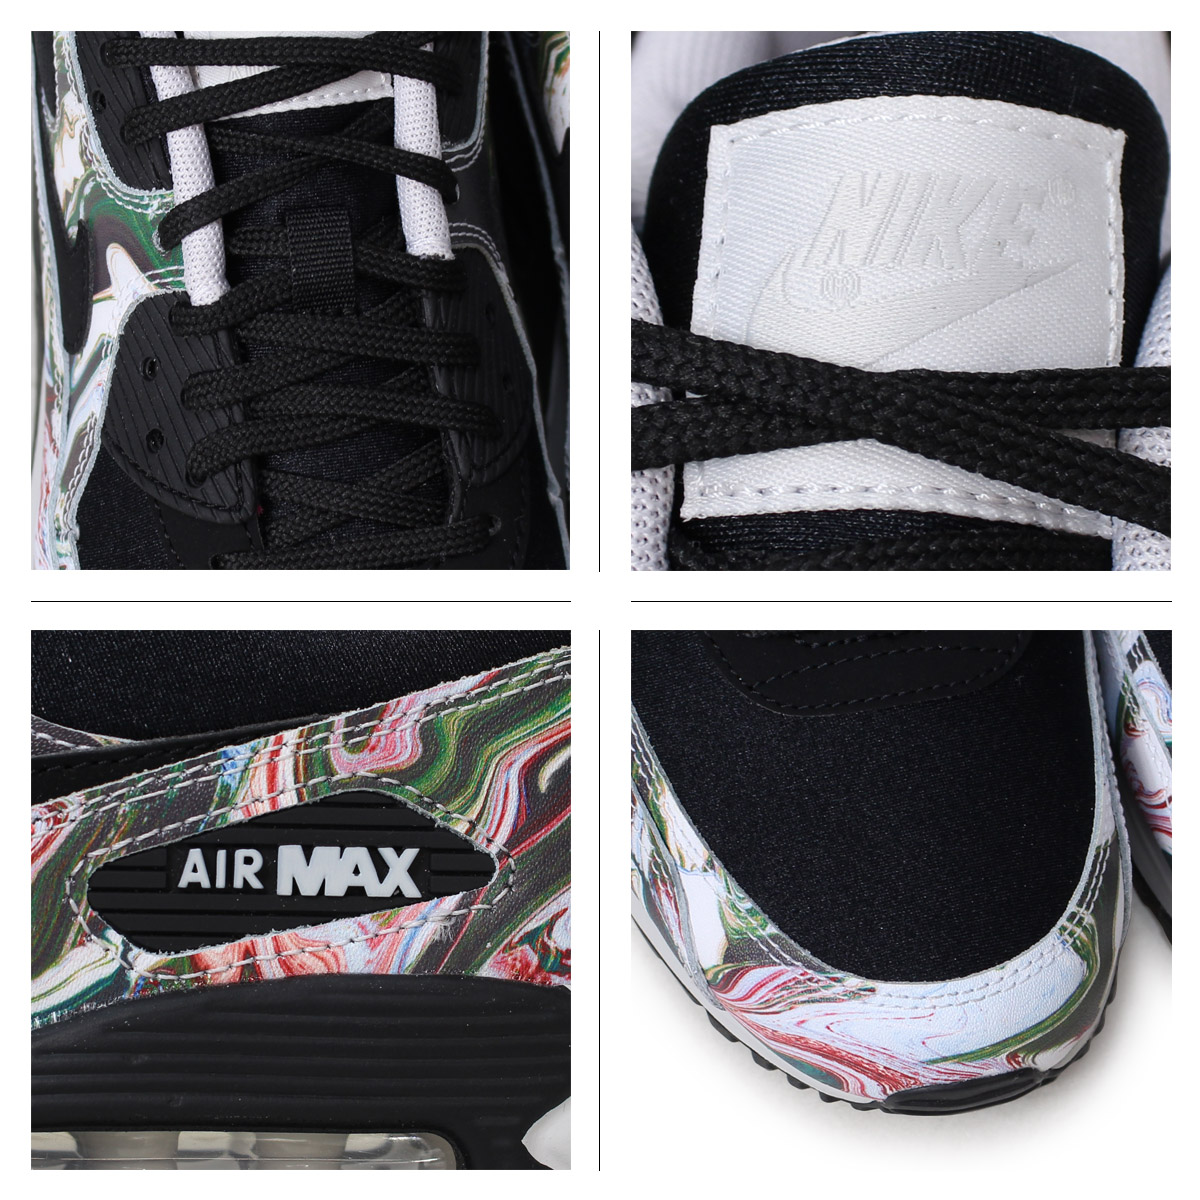 Nike NIKE Air Max 90 lady s men s sneakers WMNS AIR MAX 90 MARBLE AO1521-001  black  load planned Shinnyu load in reservation product 5 12 containing  ace1bf070